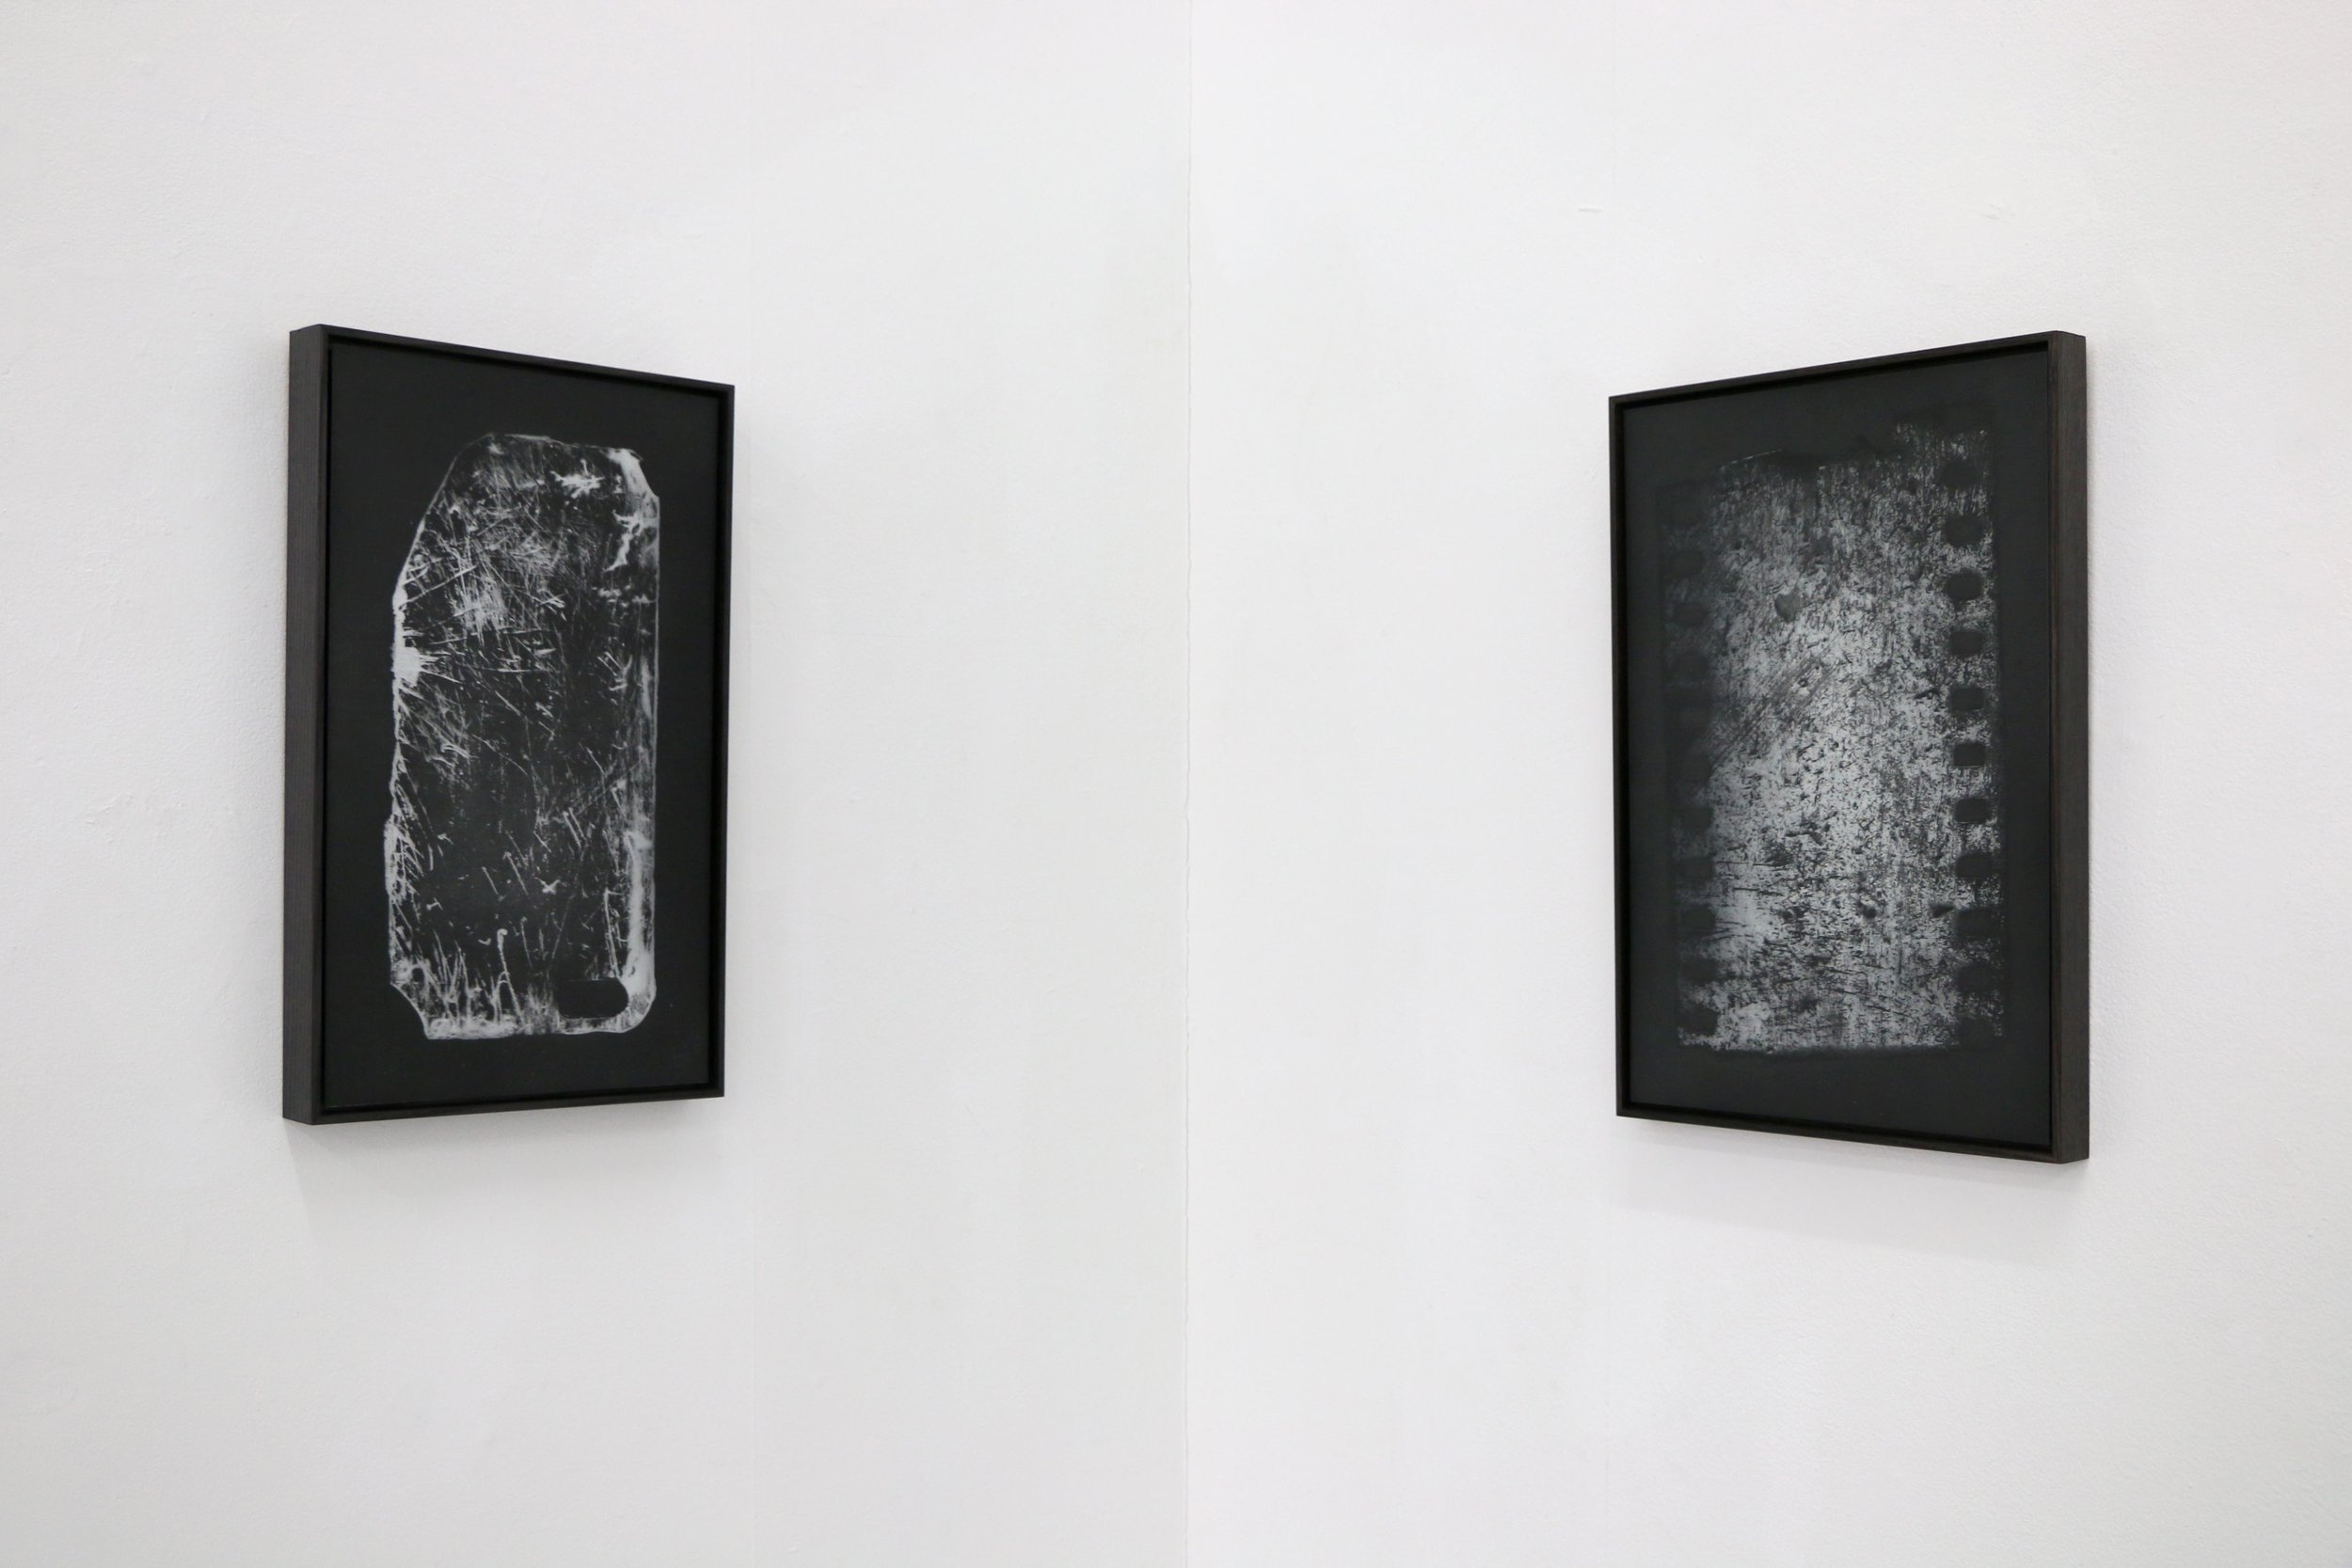 Installation view: iProtection (left); Mirror 35mm (right).